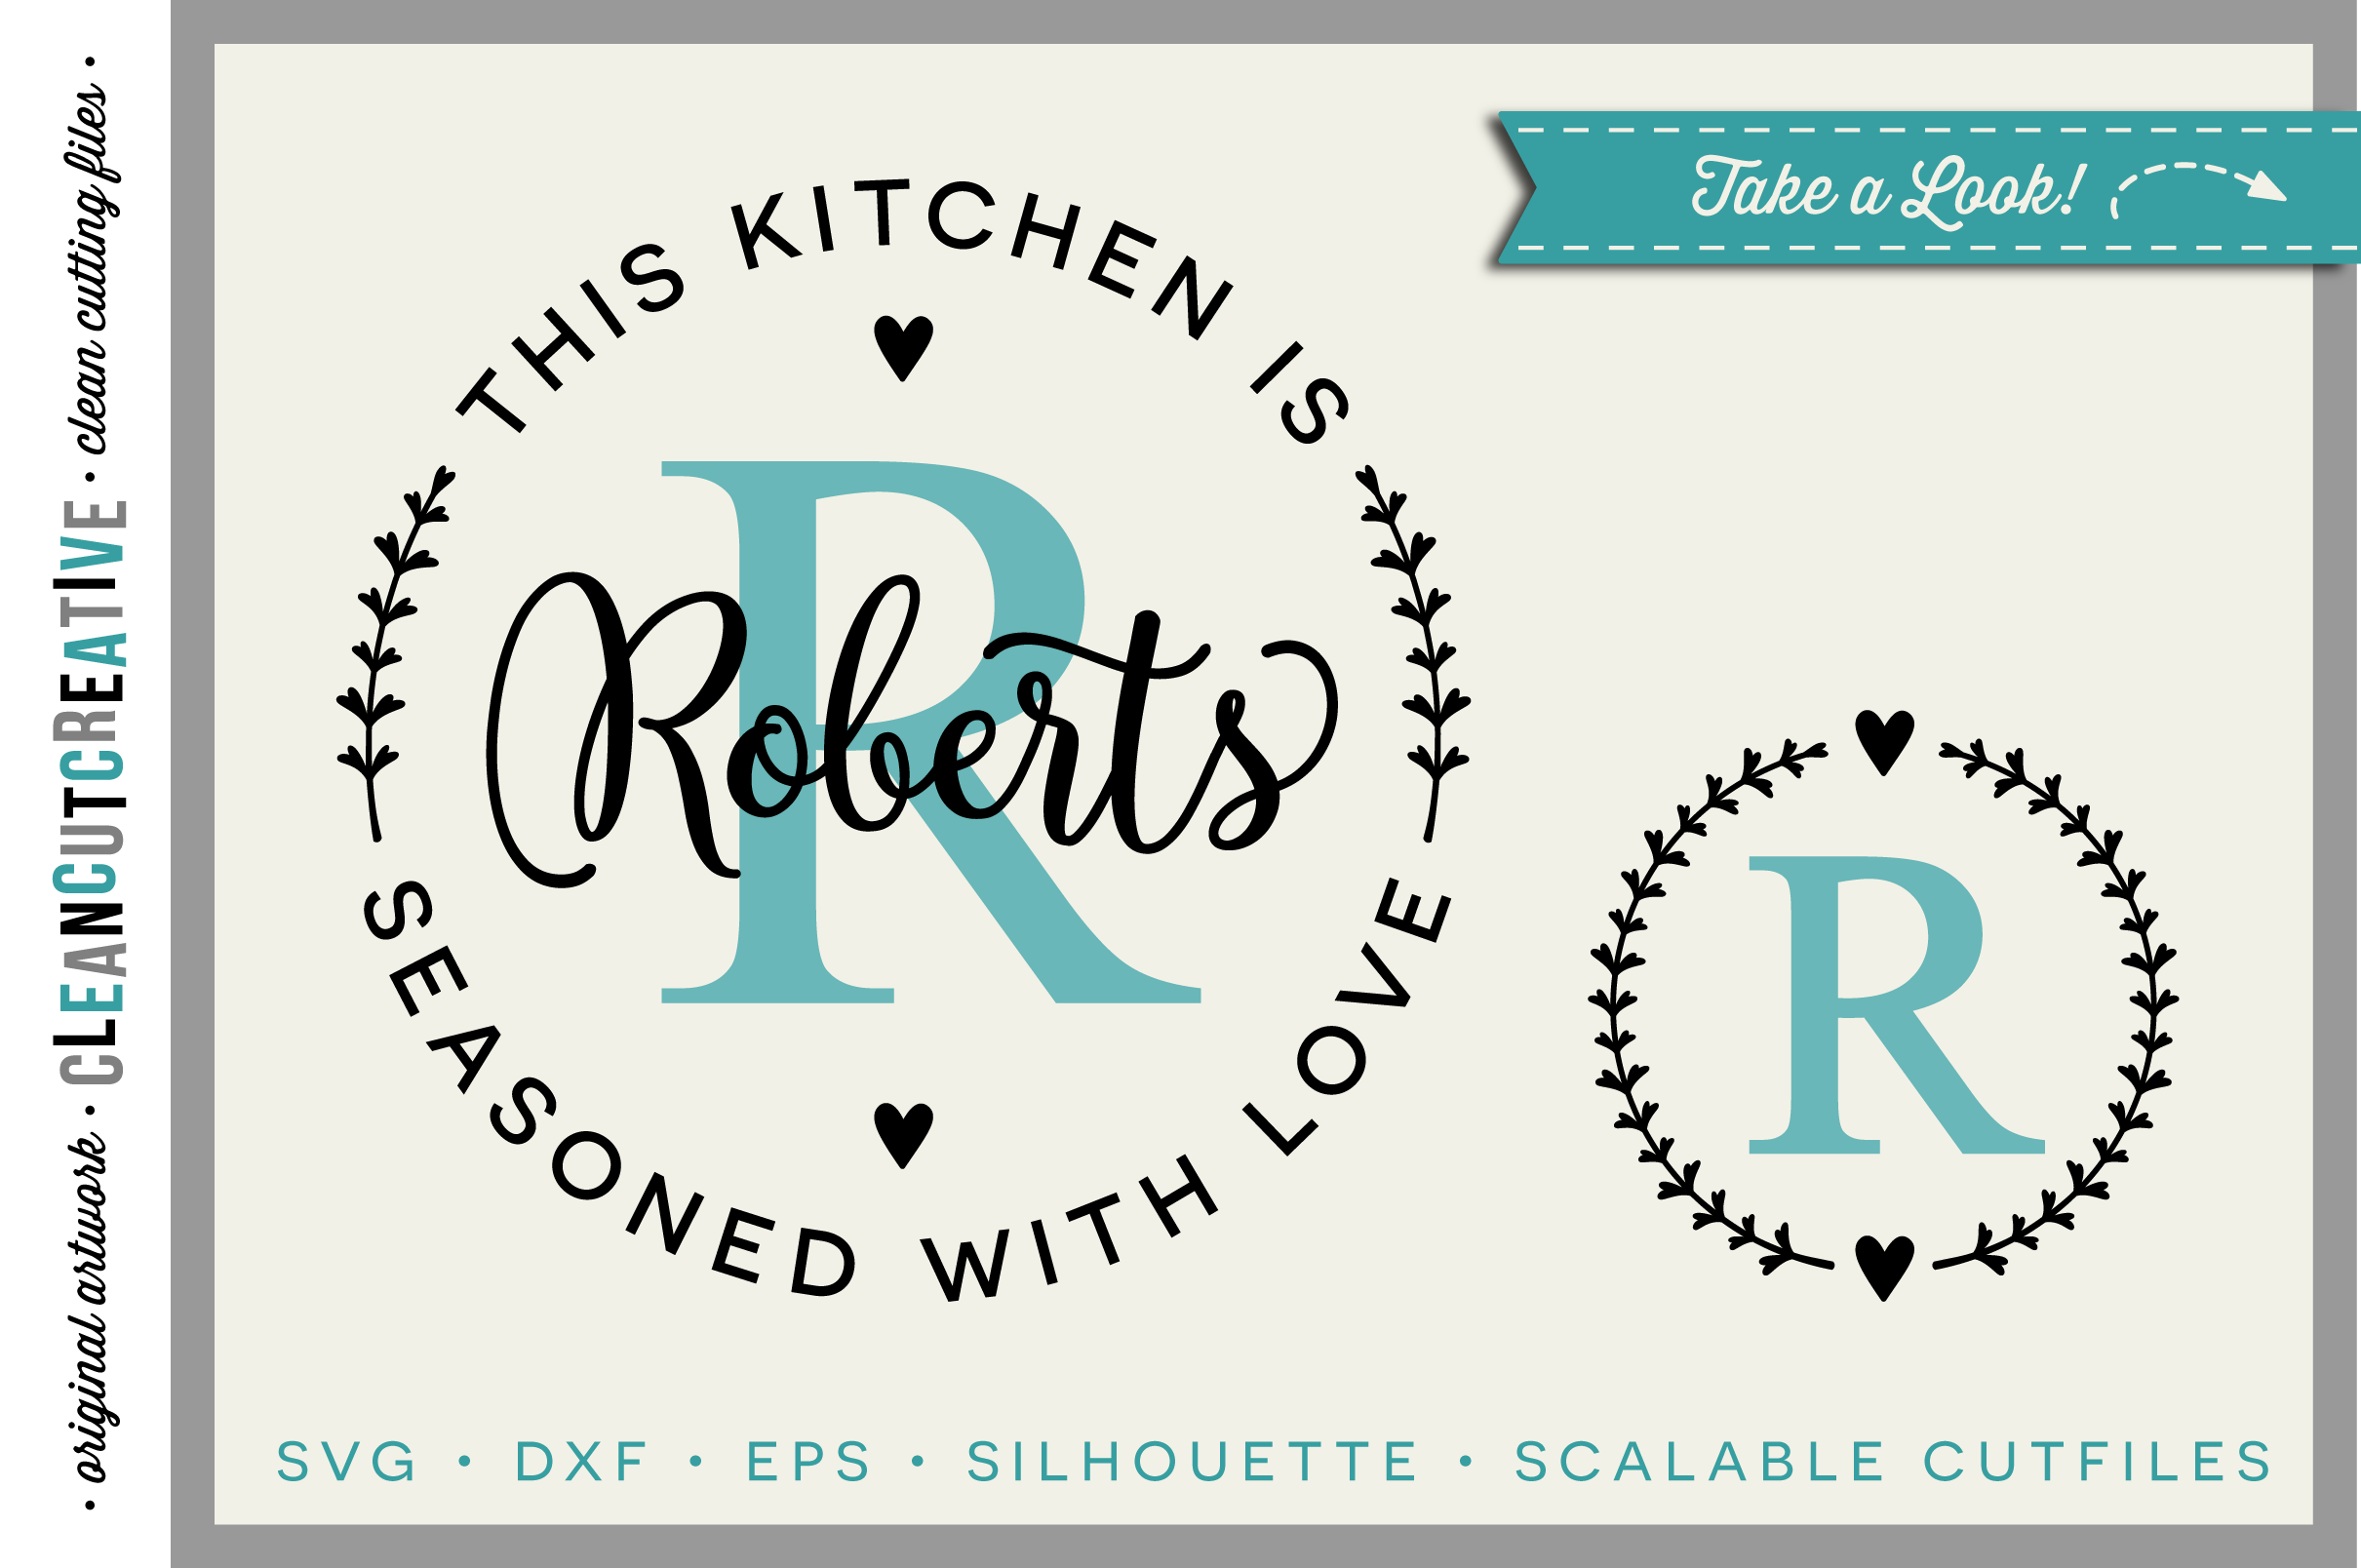 Kitchen Seasoned with Love | Personalize SVG monogram frame example image 1